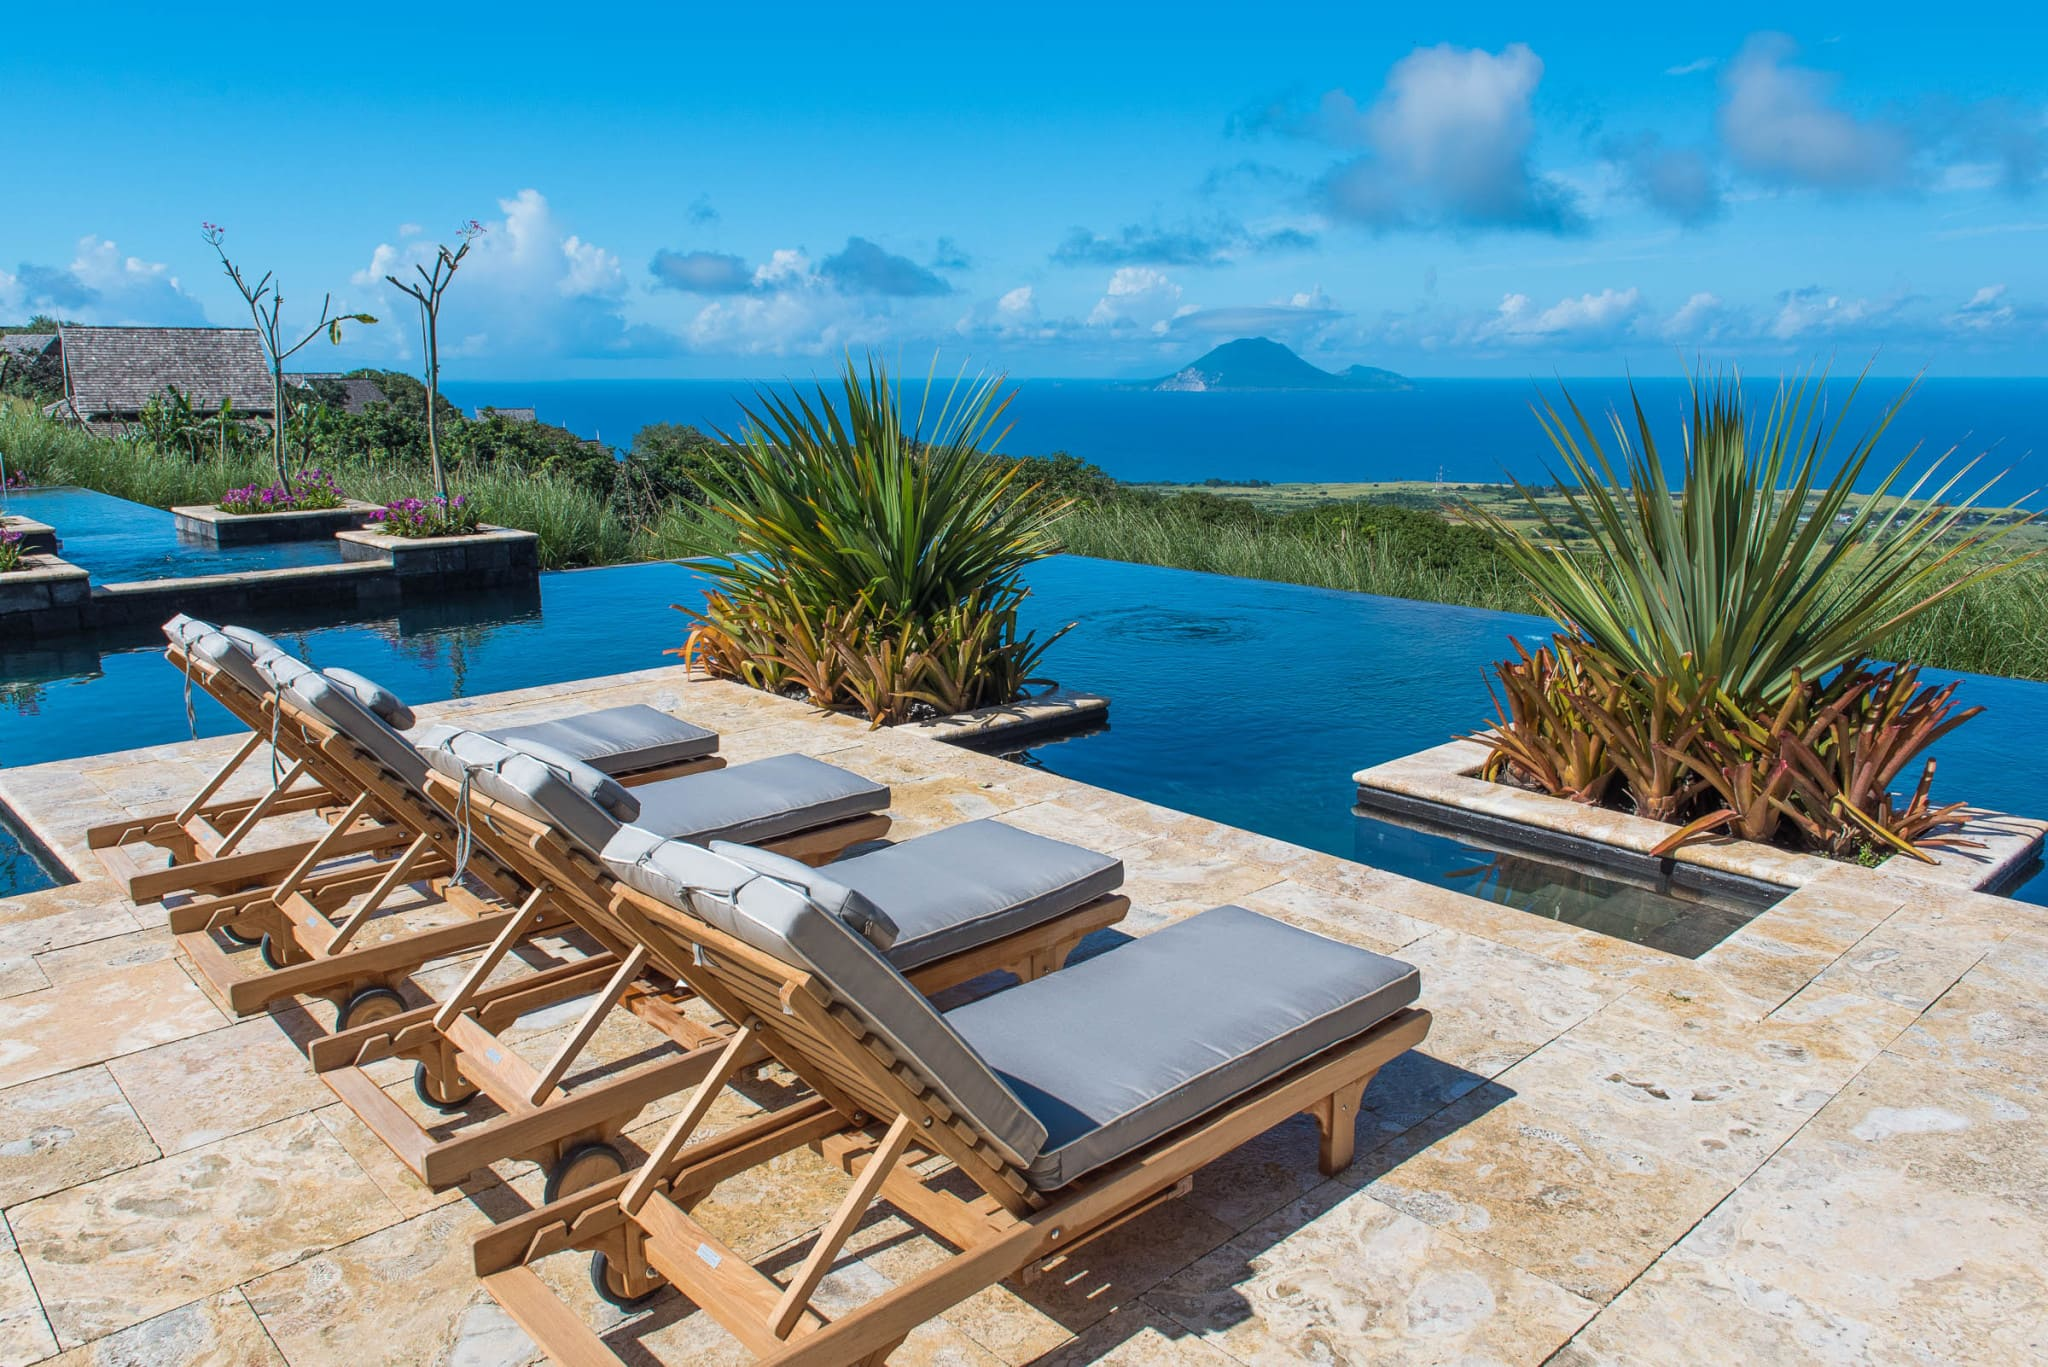 The Pool at Belle Mont Farm on Kittitian Hill by Patrick Bennett